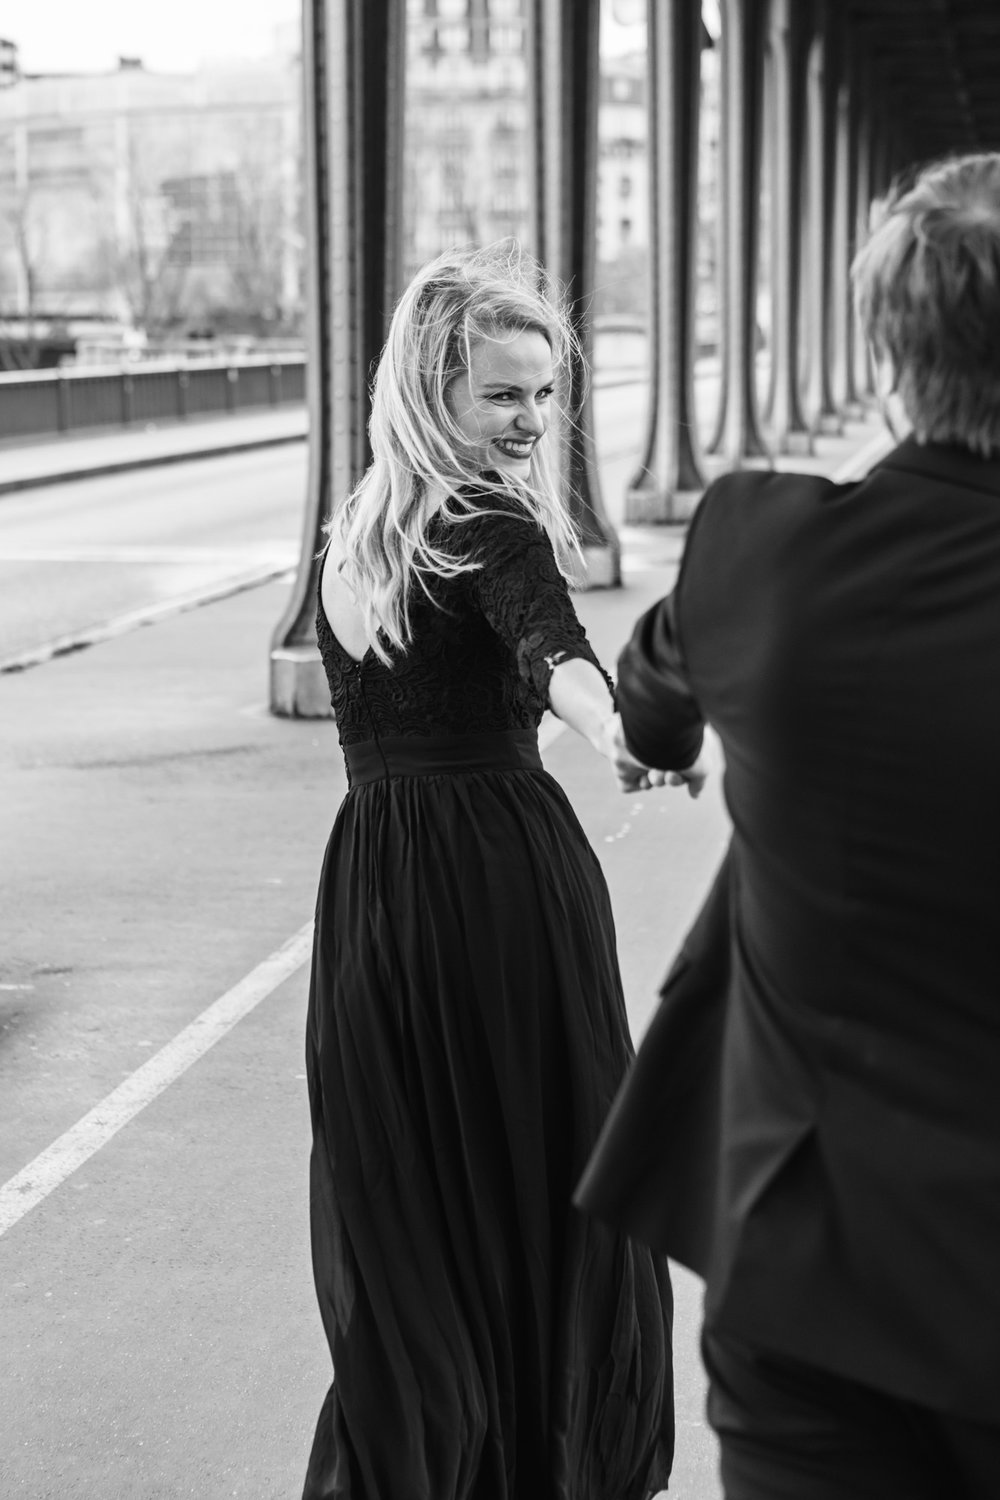 Paris Photographer Federico Guendel captured couple engagement portrait in black and white  at Pont Bir Hakeim